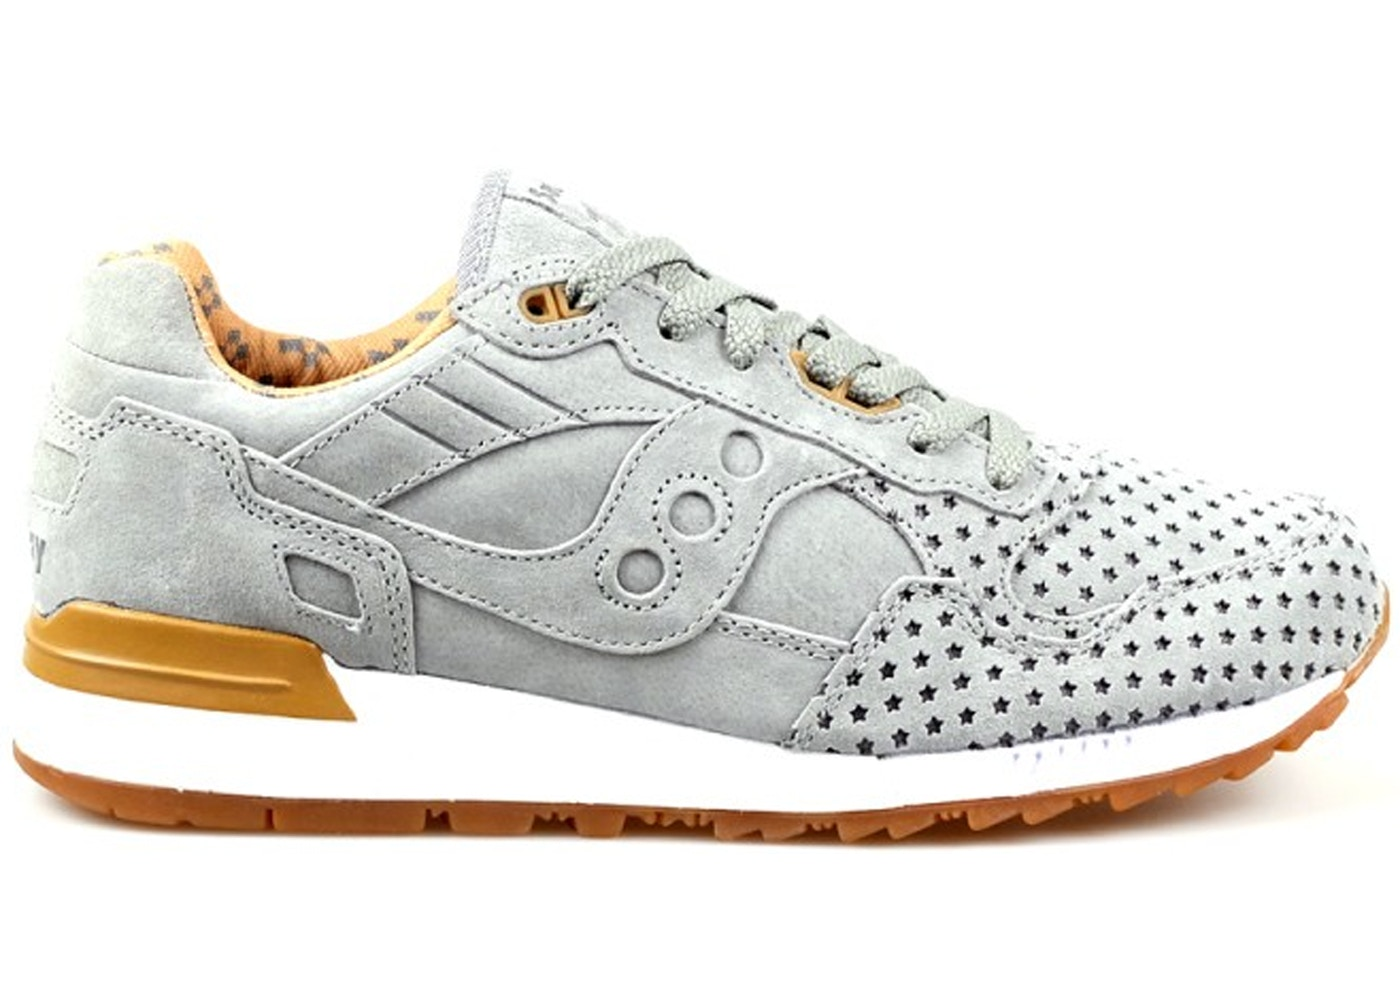 Fast Delivery Saucony Shadow 5000 s70119-4 Grey   Saucony   Mens   2014